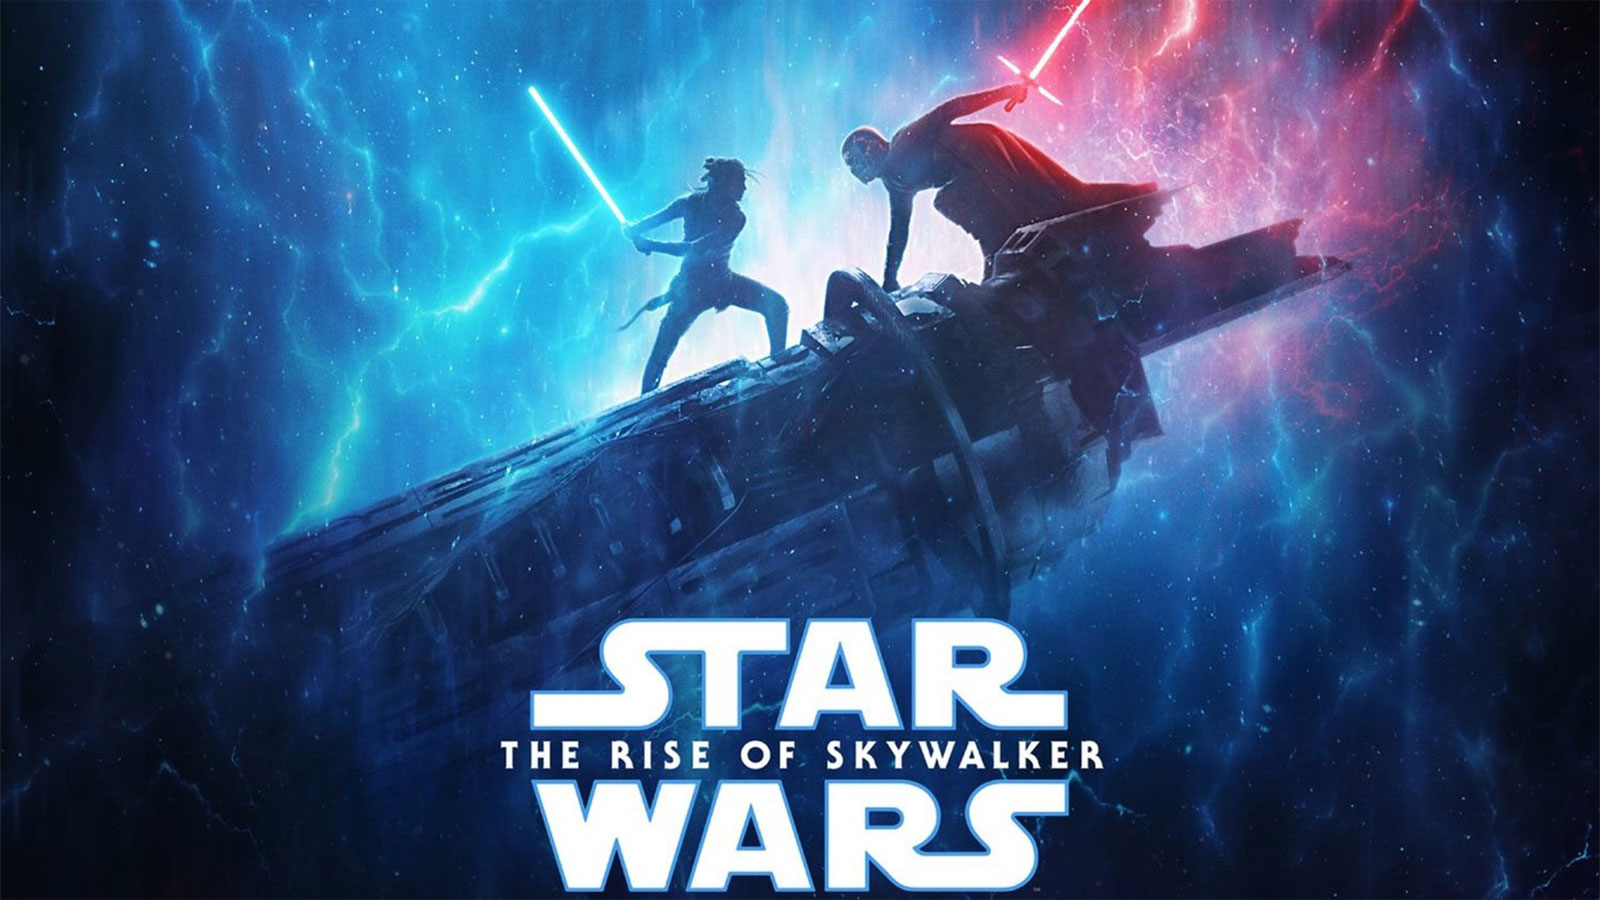 تریلر فیلم Star Wars: The Rise of Skywalker